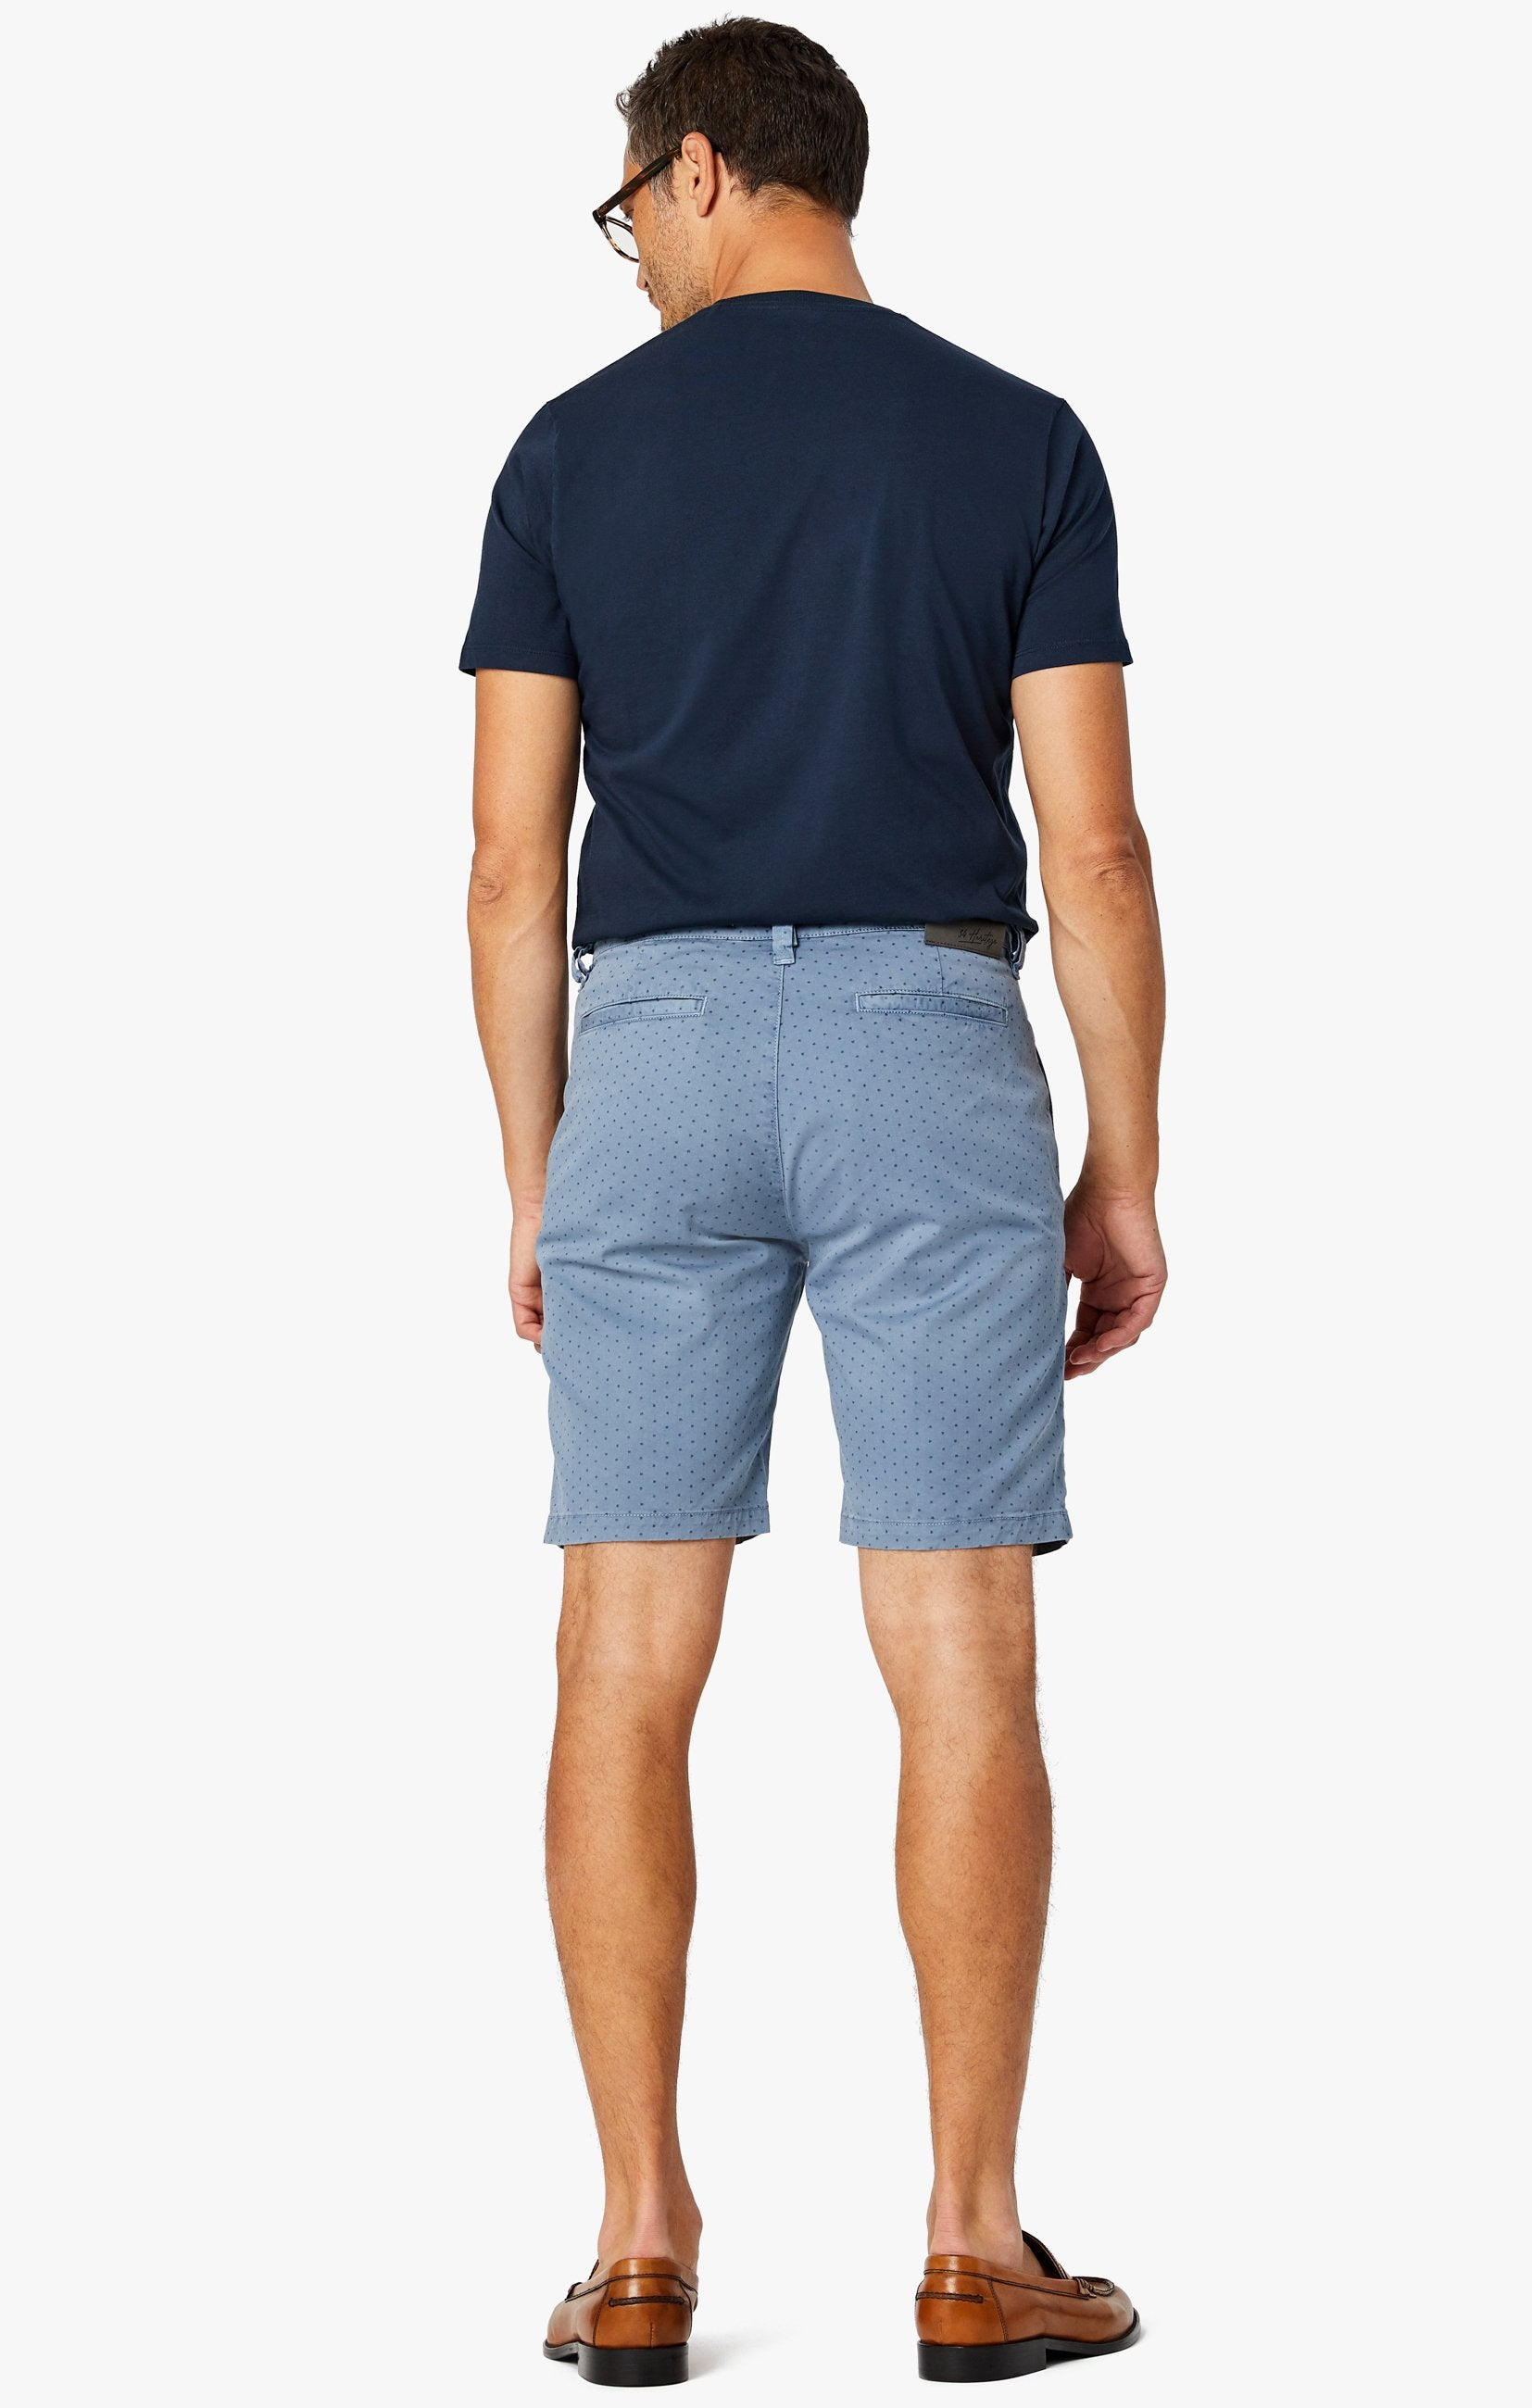 Arizona Slim Shorts in Blue Fancy Image 4